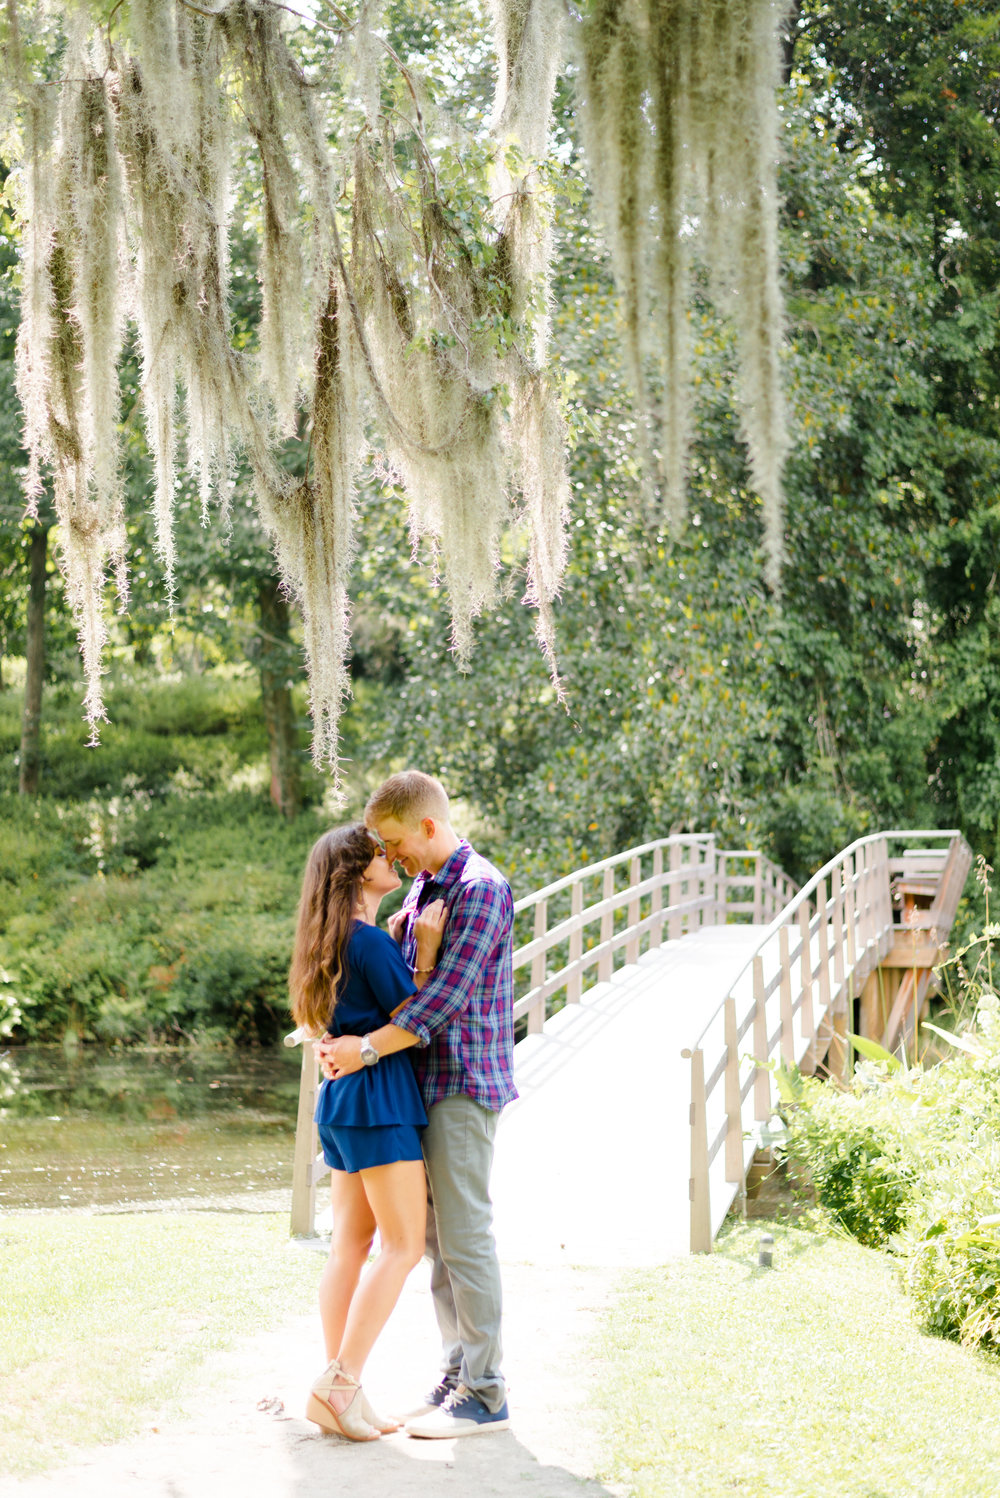 MIDDLETON PLACE ENGAGEMENT SESSION | MIKE + HOLLY